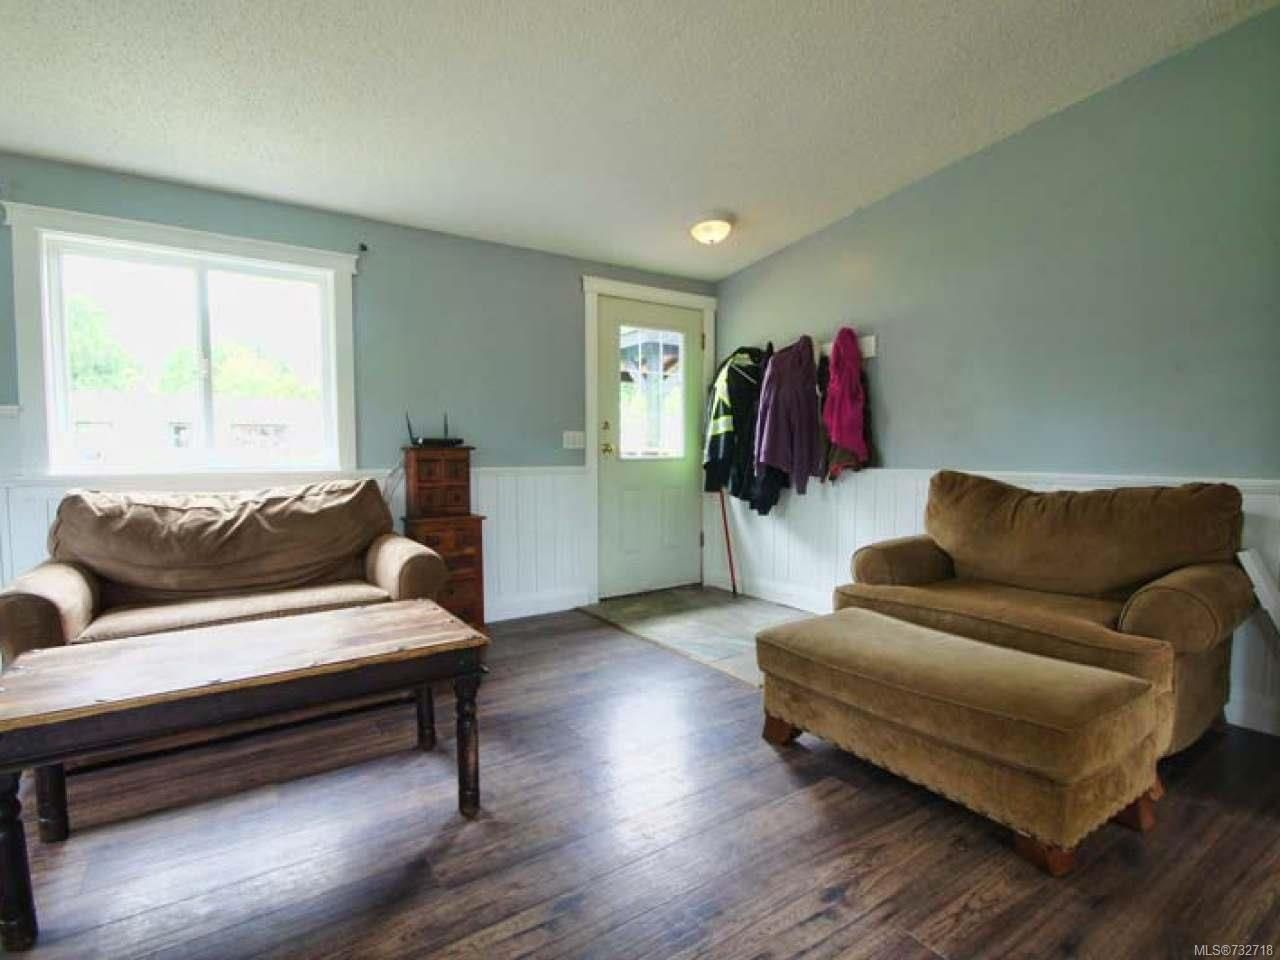 Photo 11: Photos: 921 POPLAR Way in ERRINGTON: PQ Errington/Coombs/Hilliers Manufactured Home for sale (Parksville/Qualicum)  : MLS®# 732718